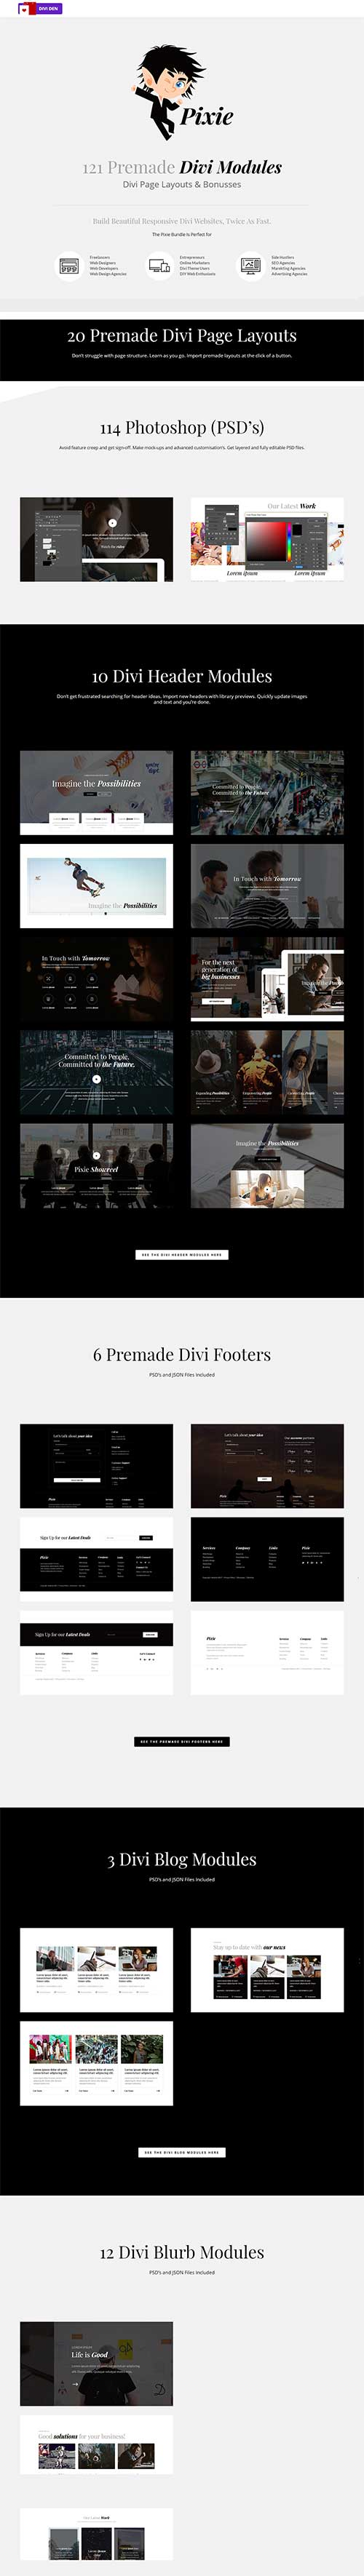 divi pixie layout pack bundle